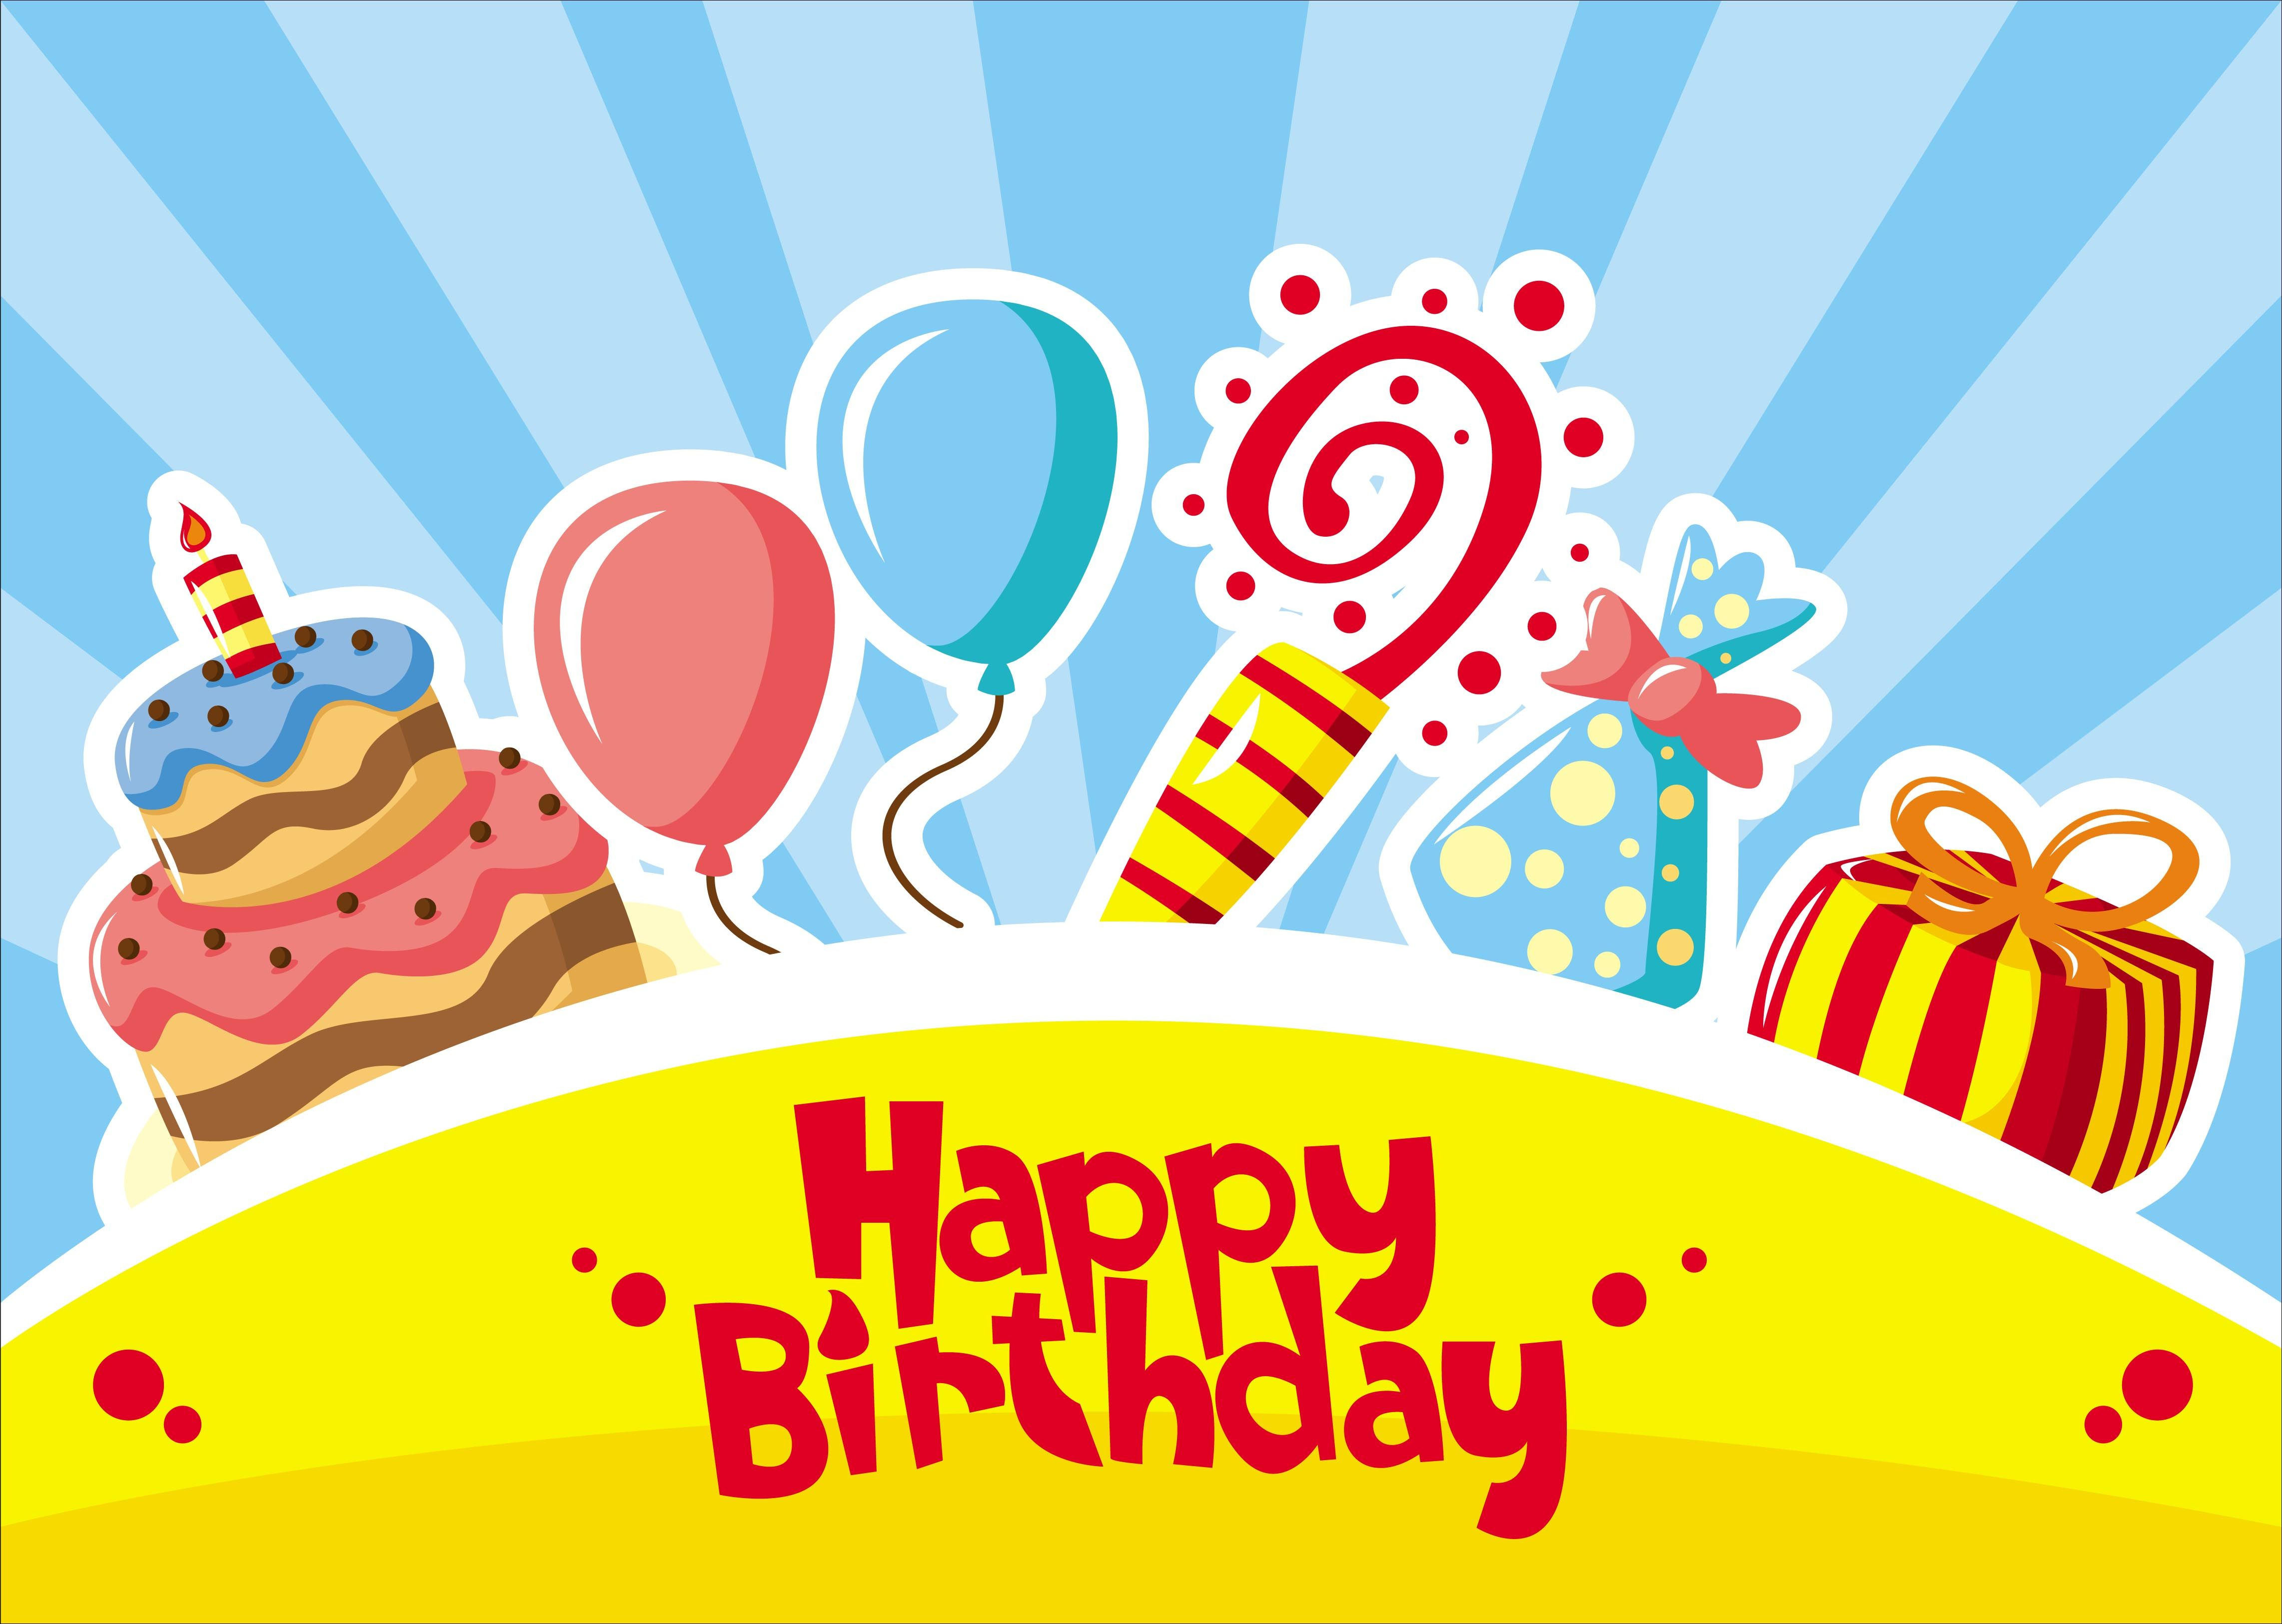 Happy birthday song download happy birthday logeswary chellam happy birthday song download bookmarktalkfo Choice Image